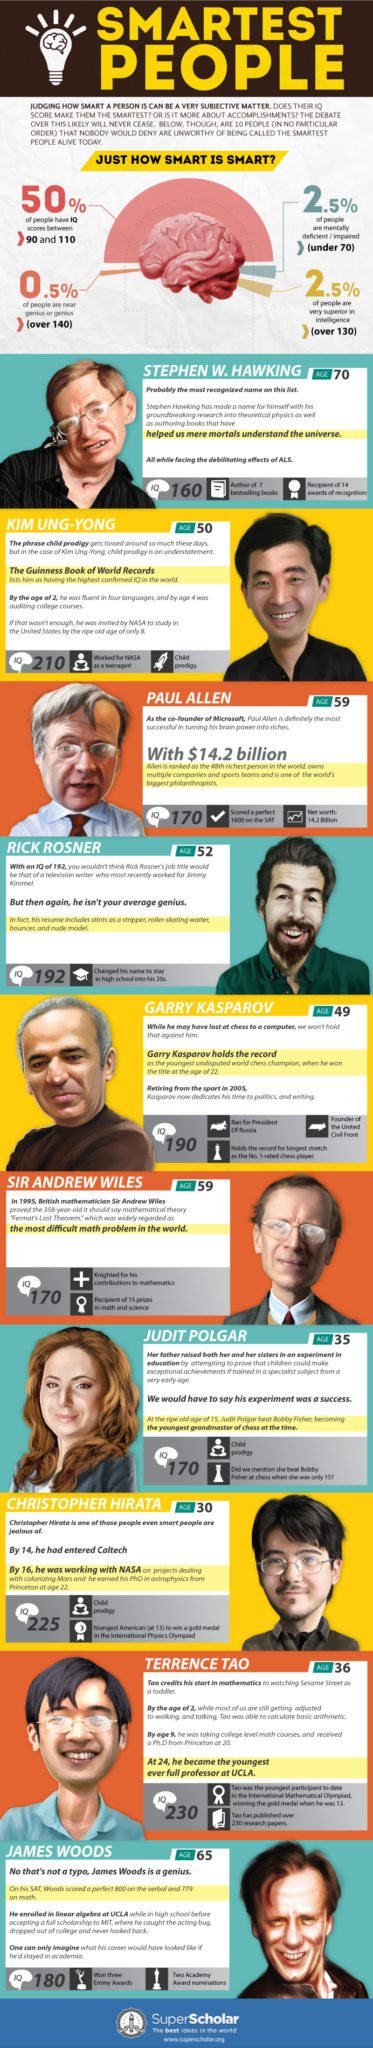 smartest in world Smartest People [Infographic]